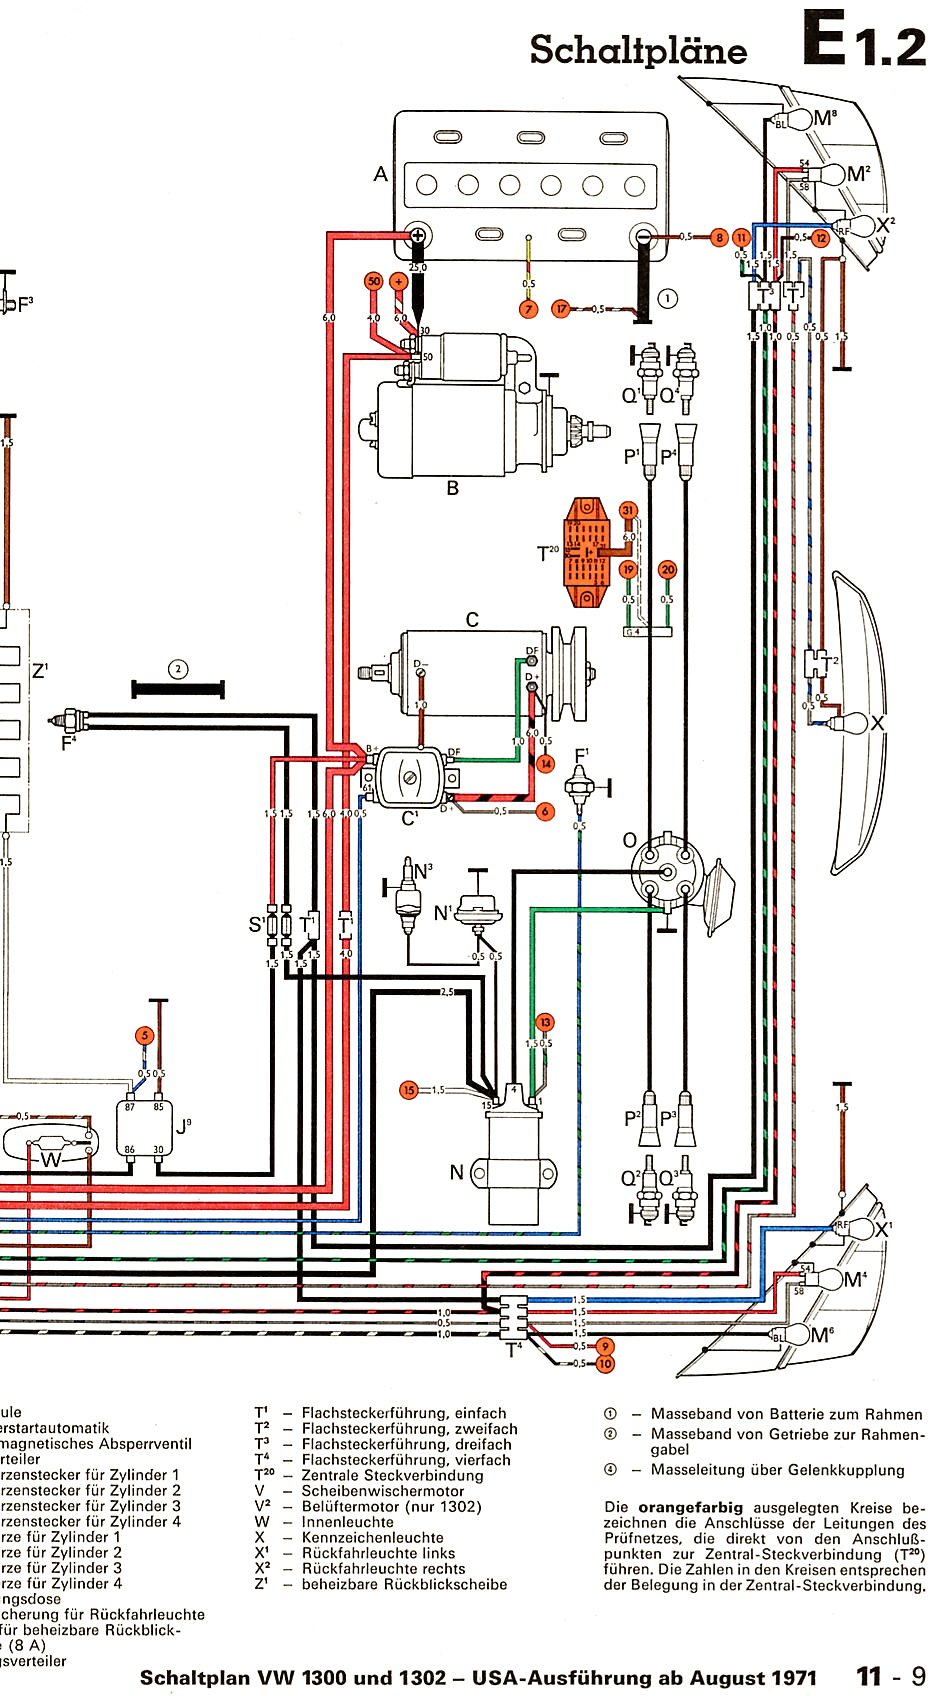 wiring diagrams 1974 volkswagen super beetle wiring vw bug wiring diagram images wiring diagram for 1974 super beetle on wiring diagrams 1974 volkswagen